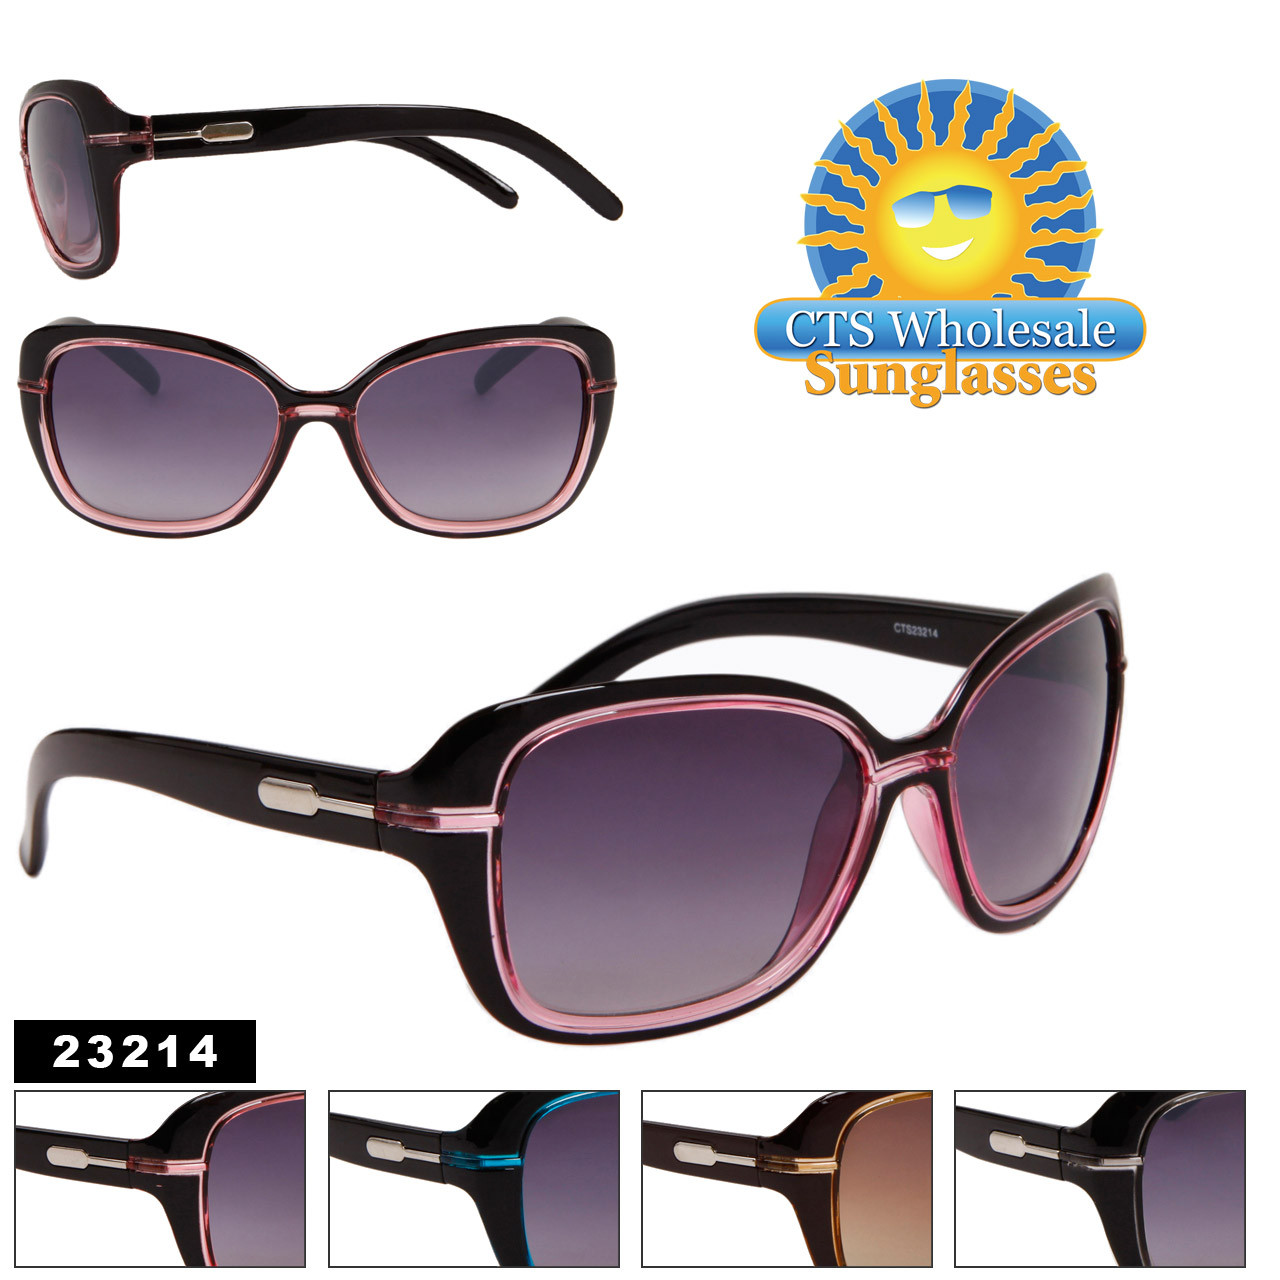 Designer Sunglasses for Ladies 23214